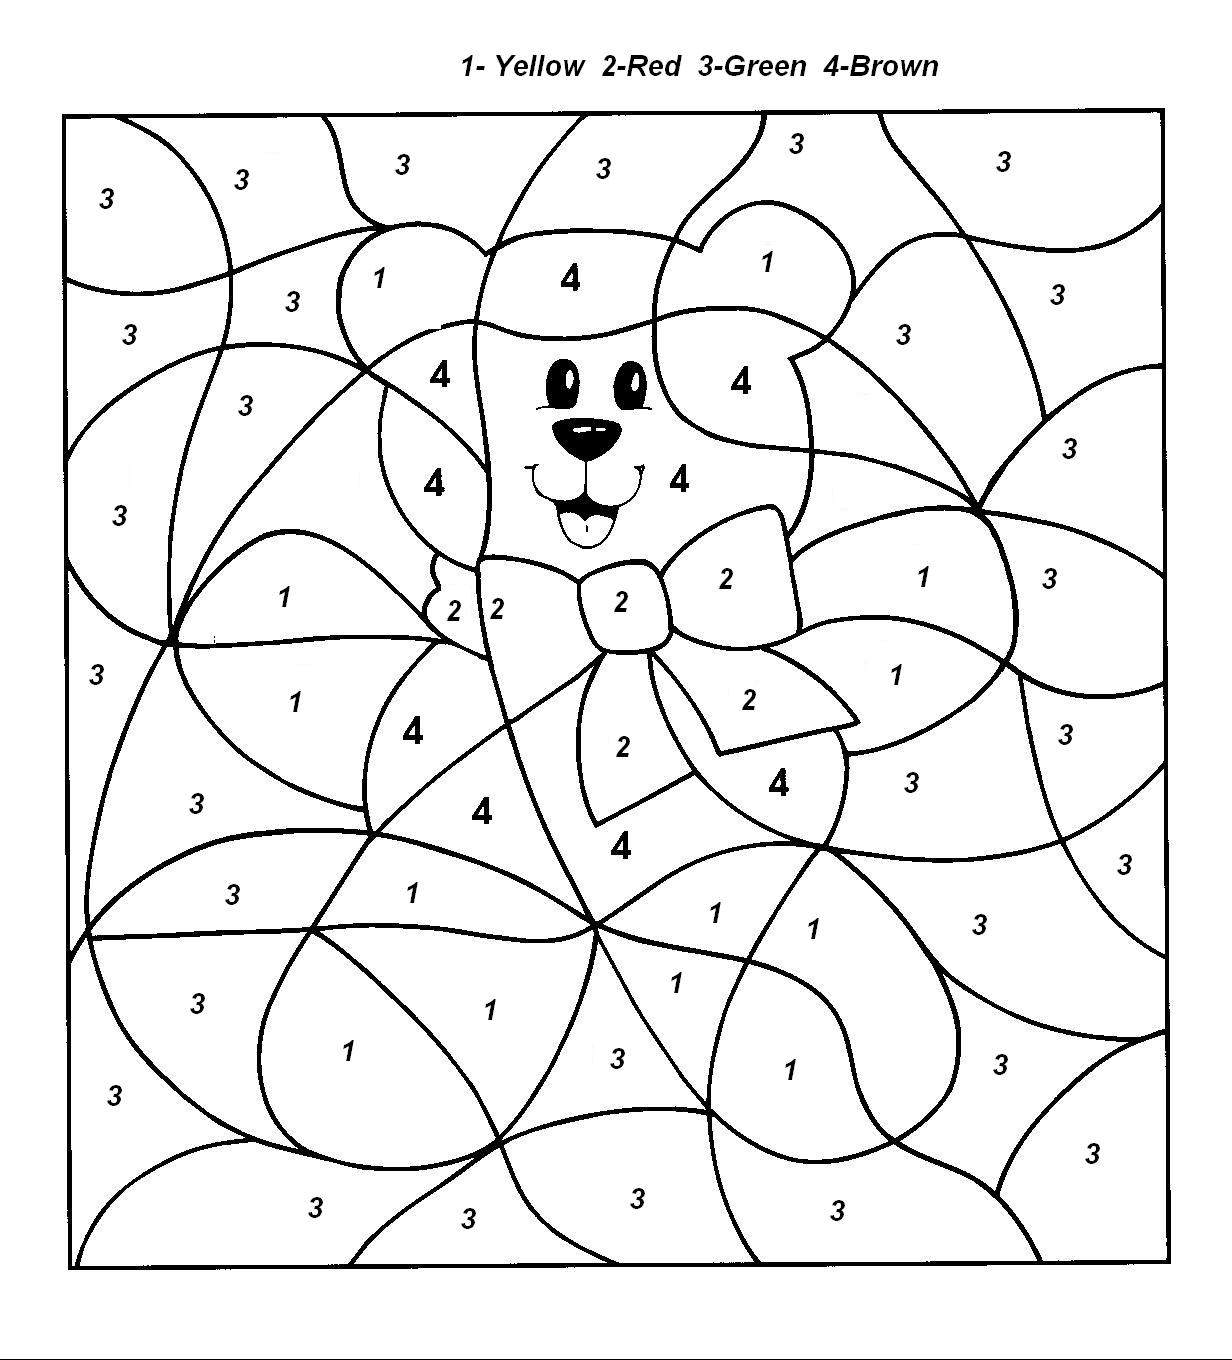 colouring by numbers worksheets free color by number worksheets cool2bkids worksheets by colouring numbers